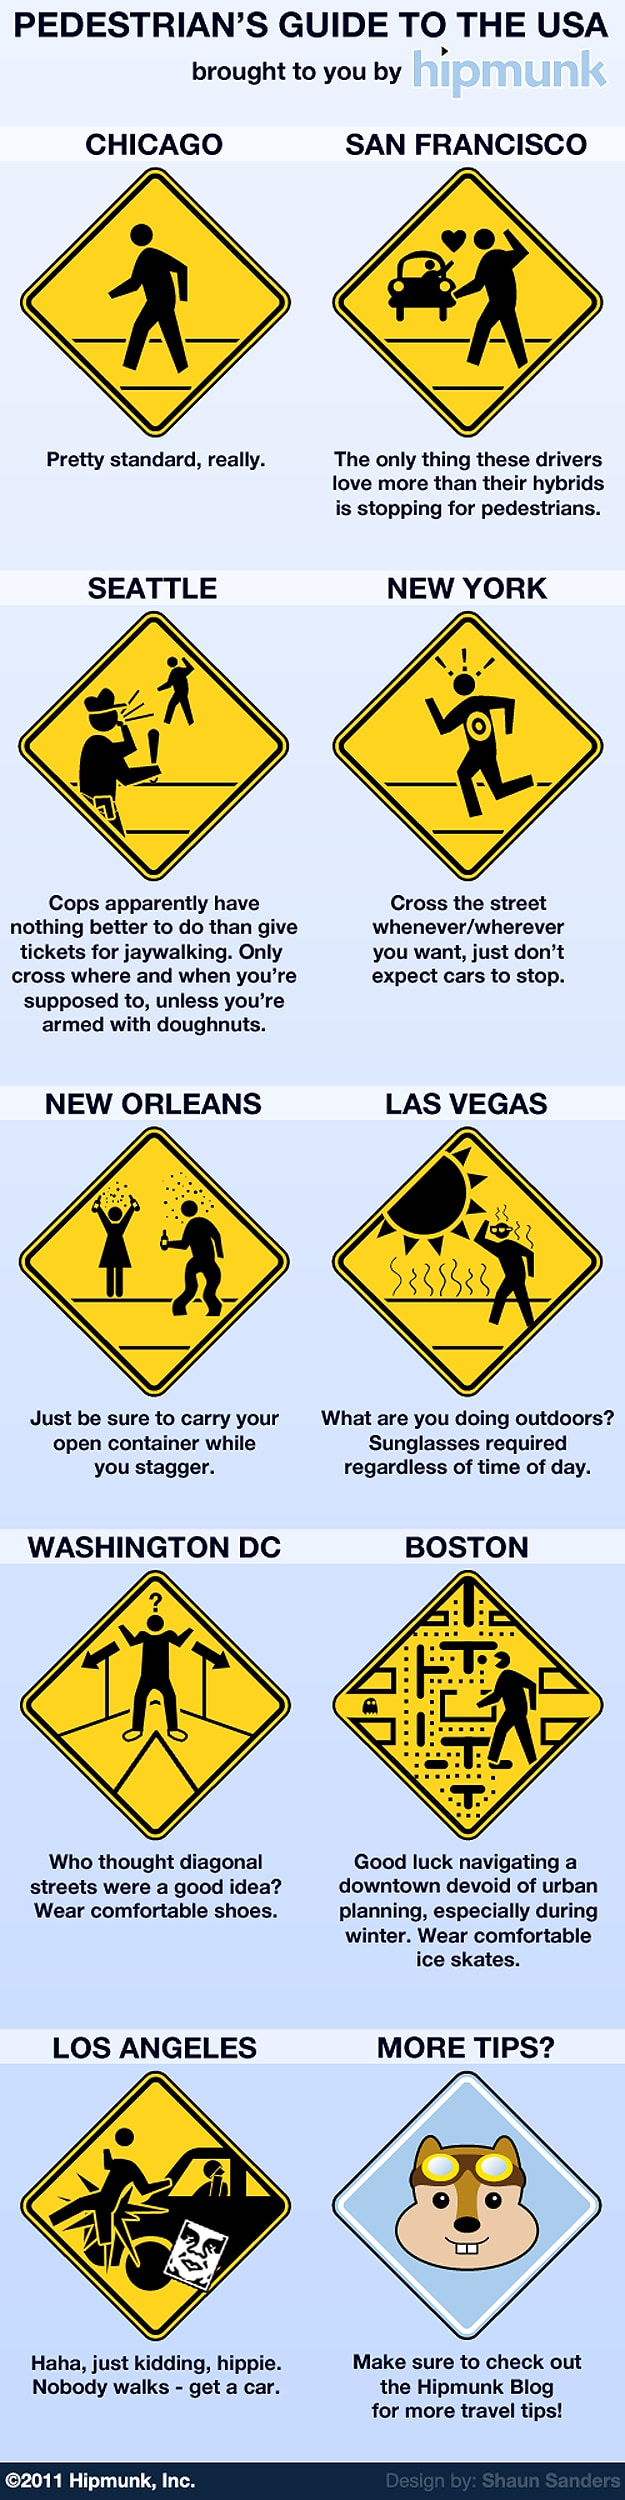 The Pedestrian's Guide to the USA